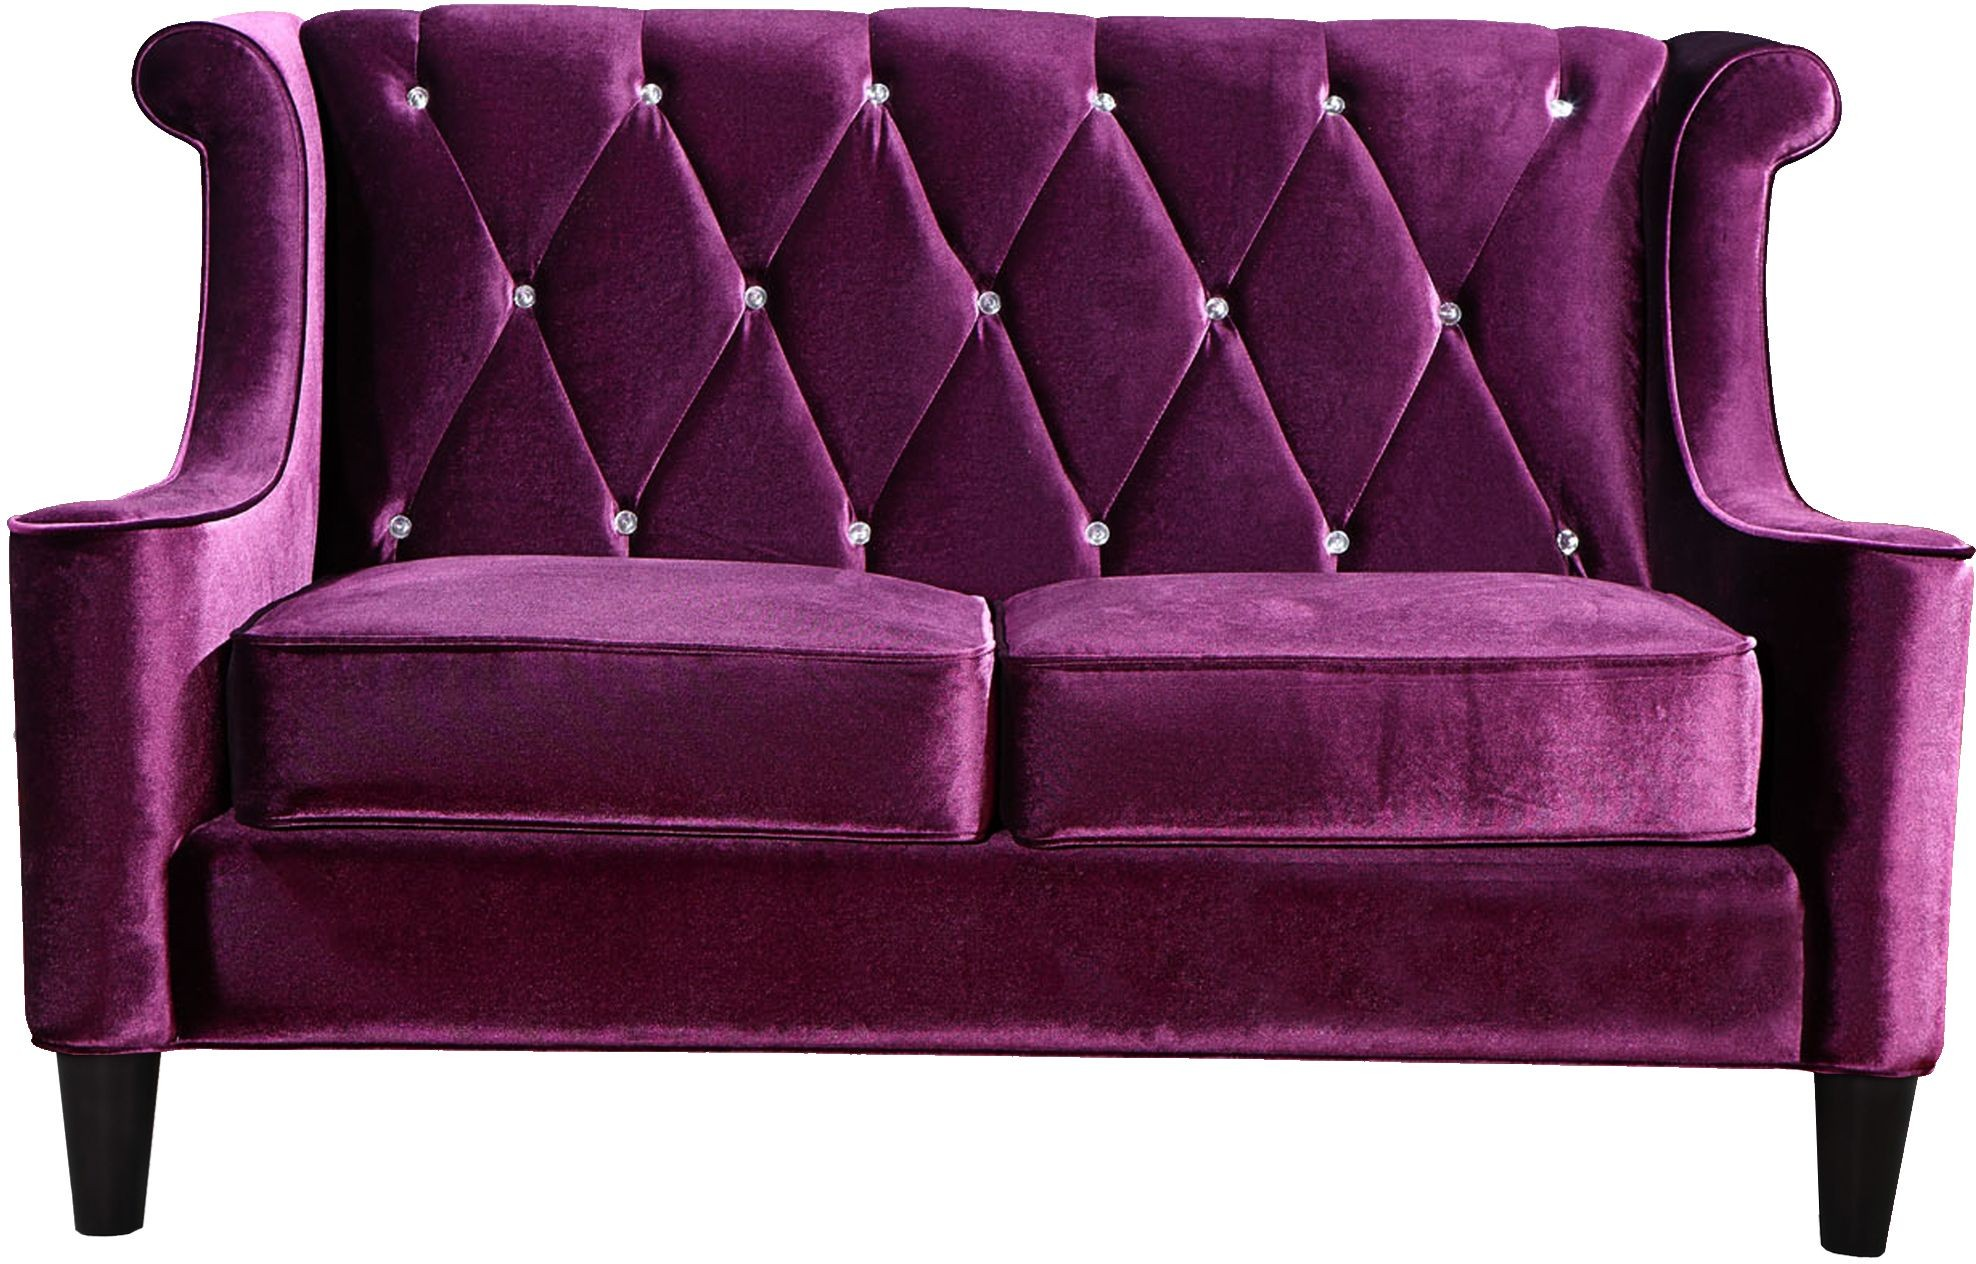 Barrister Purple Velvet Loveseat From Armen Living Coleman Furniture